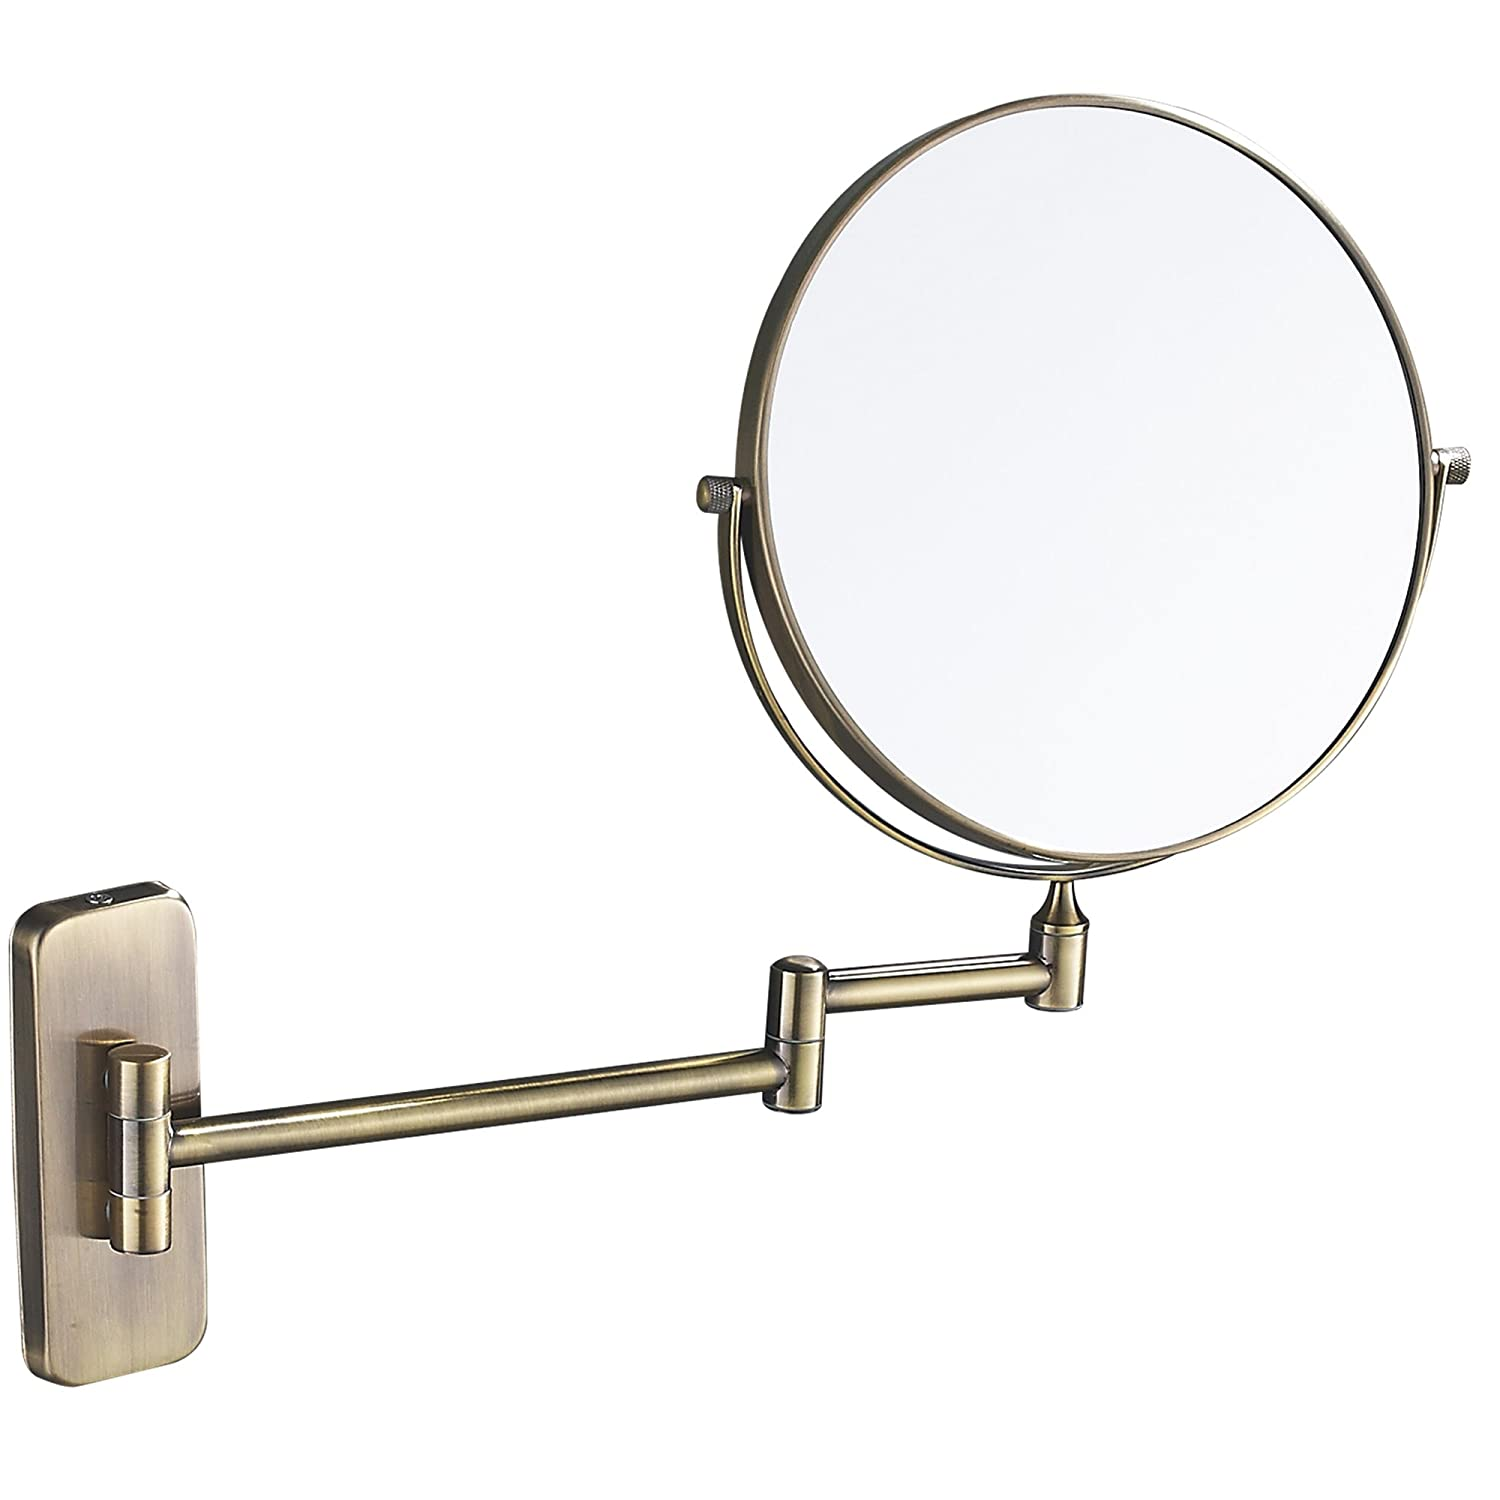 GURUN 6-Inch Antique Double-Sided Wall Mount Makeup Mirrors with 7x Magnification, Antique Bronze Finished,Small Mirror